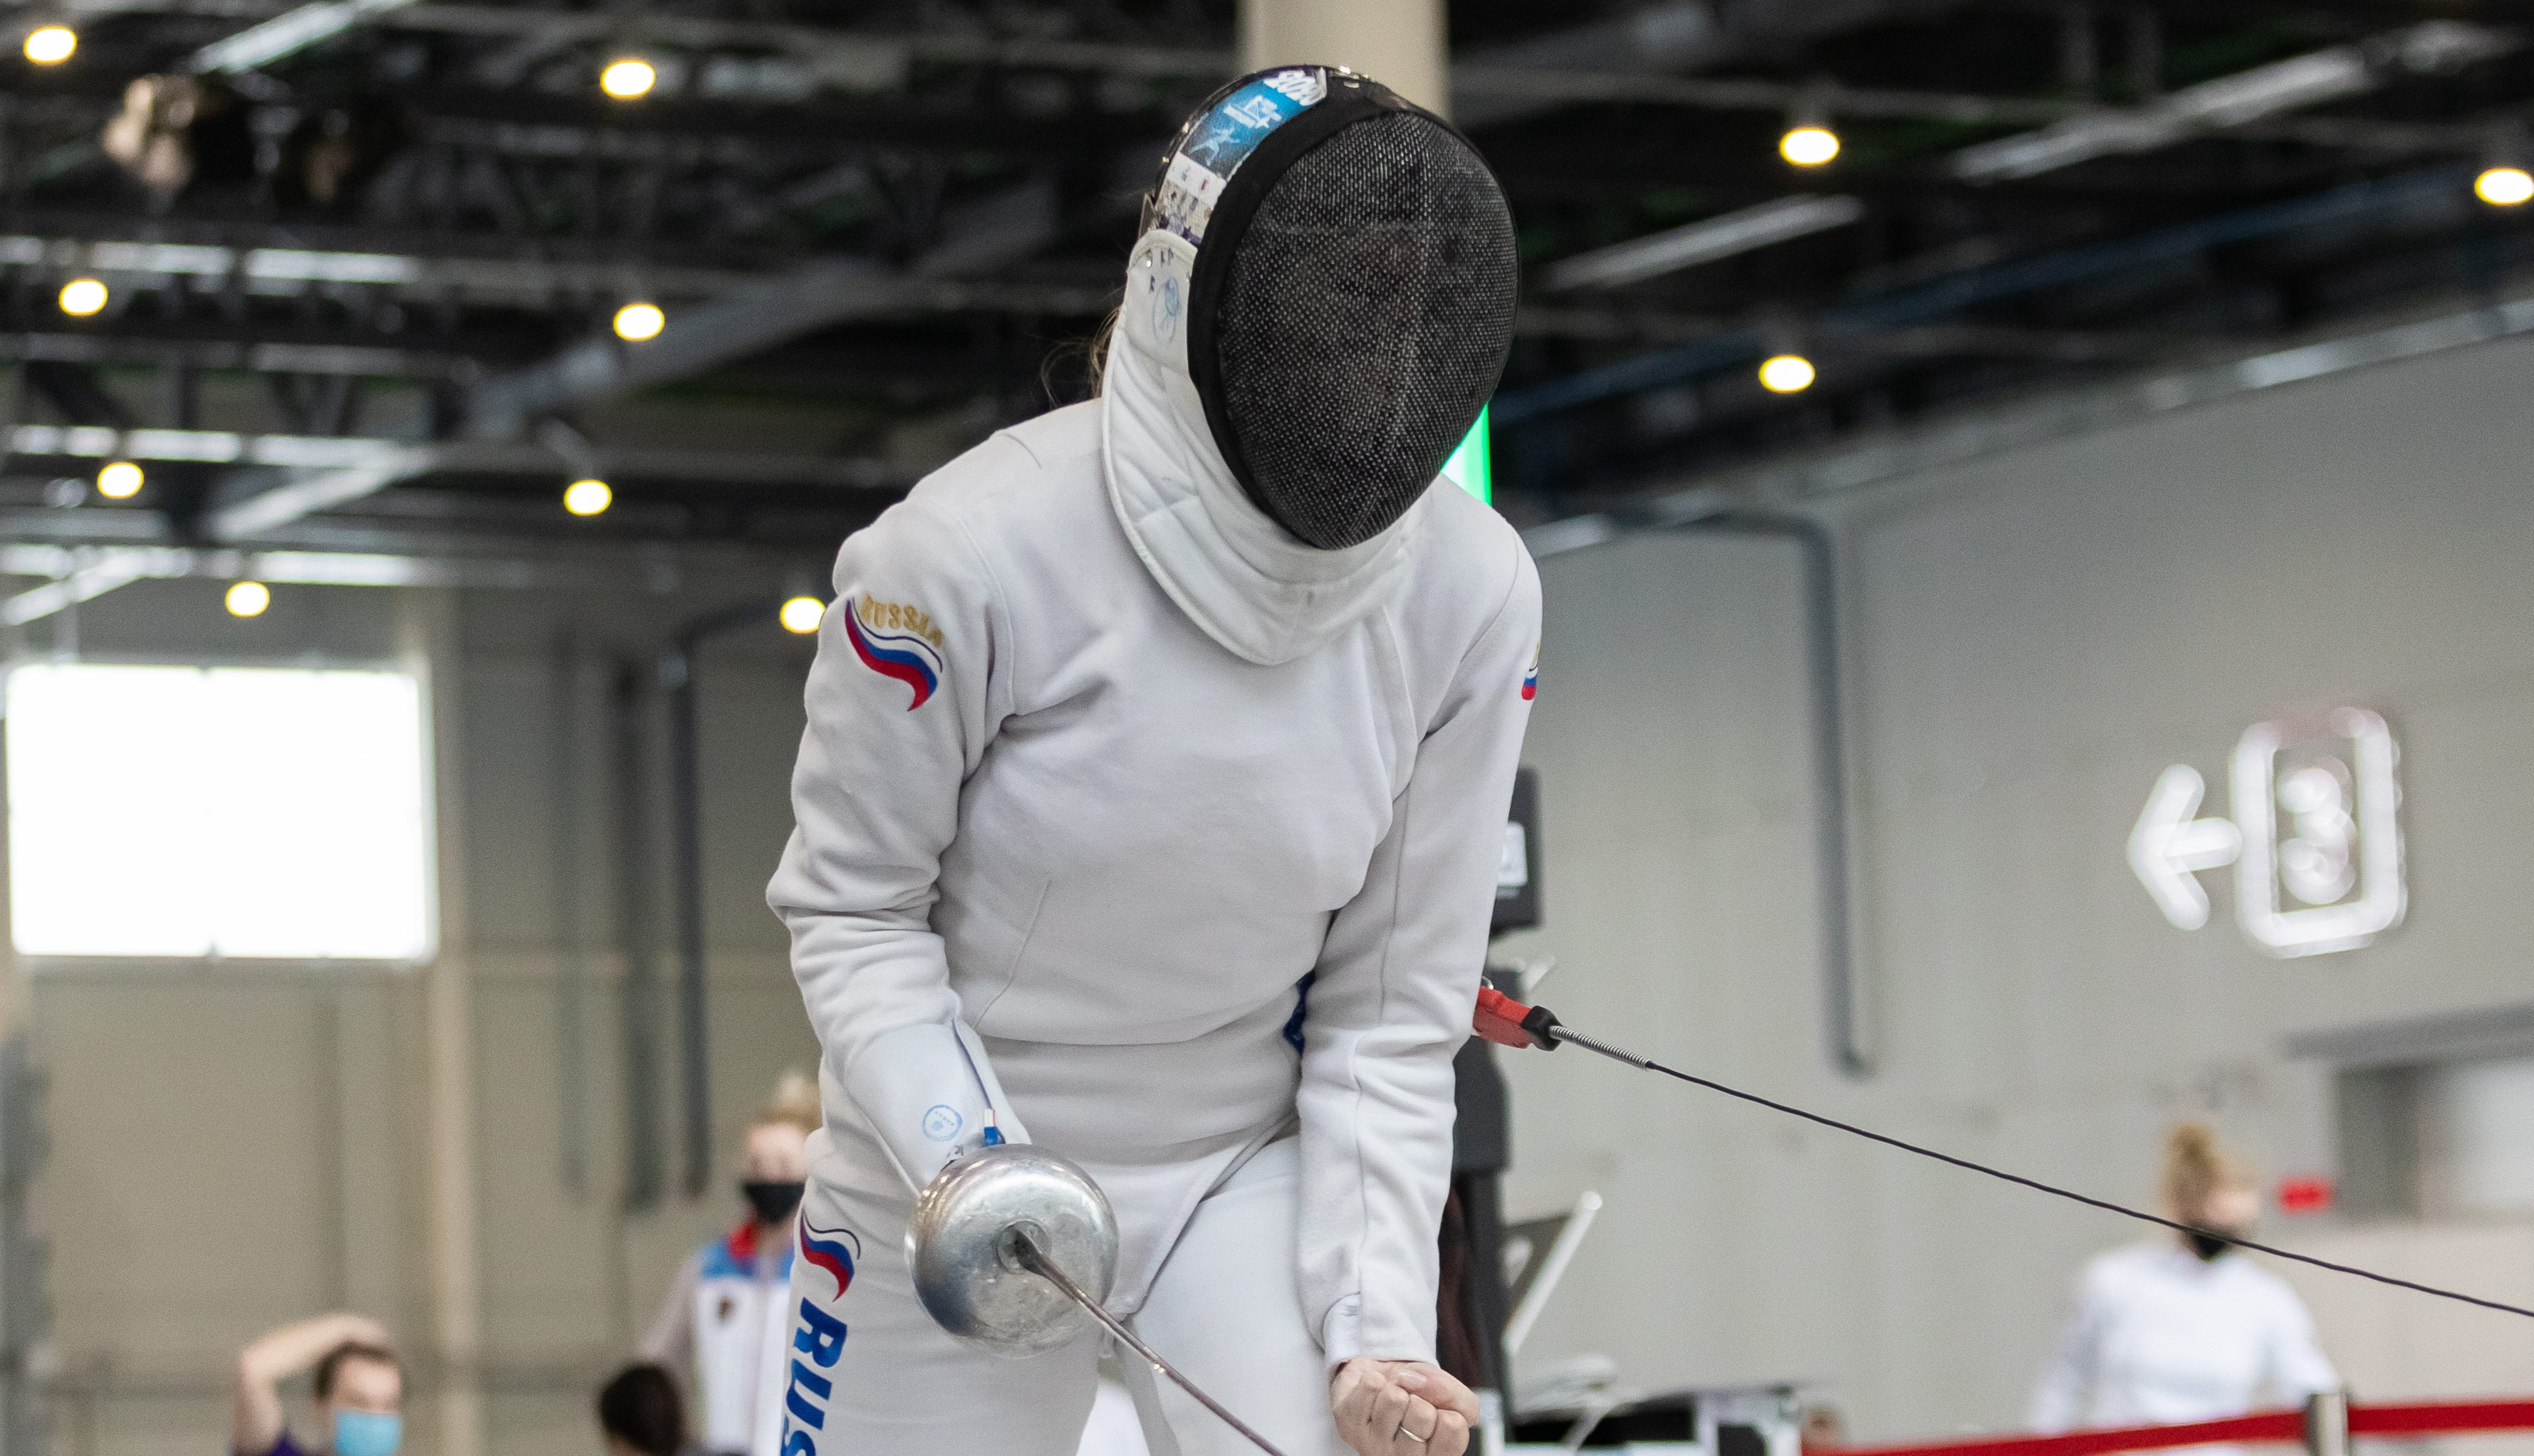 Women's events kick off at FIE World Cup leg in Epee in Kazan